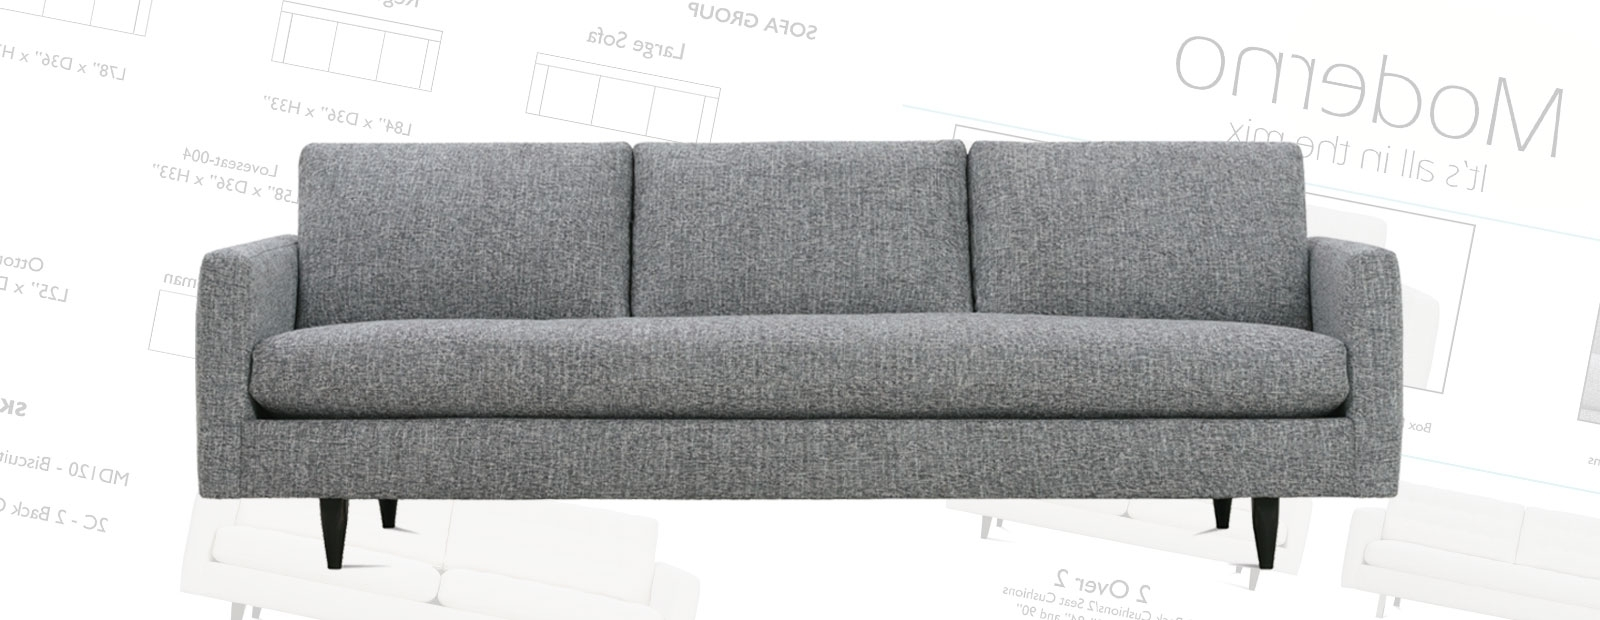 Preferred Mobilia Sectional Sofas Regarding Moderno Seating (View 11 of 15)